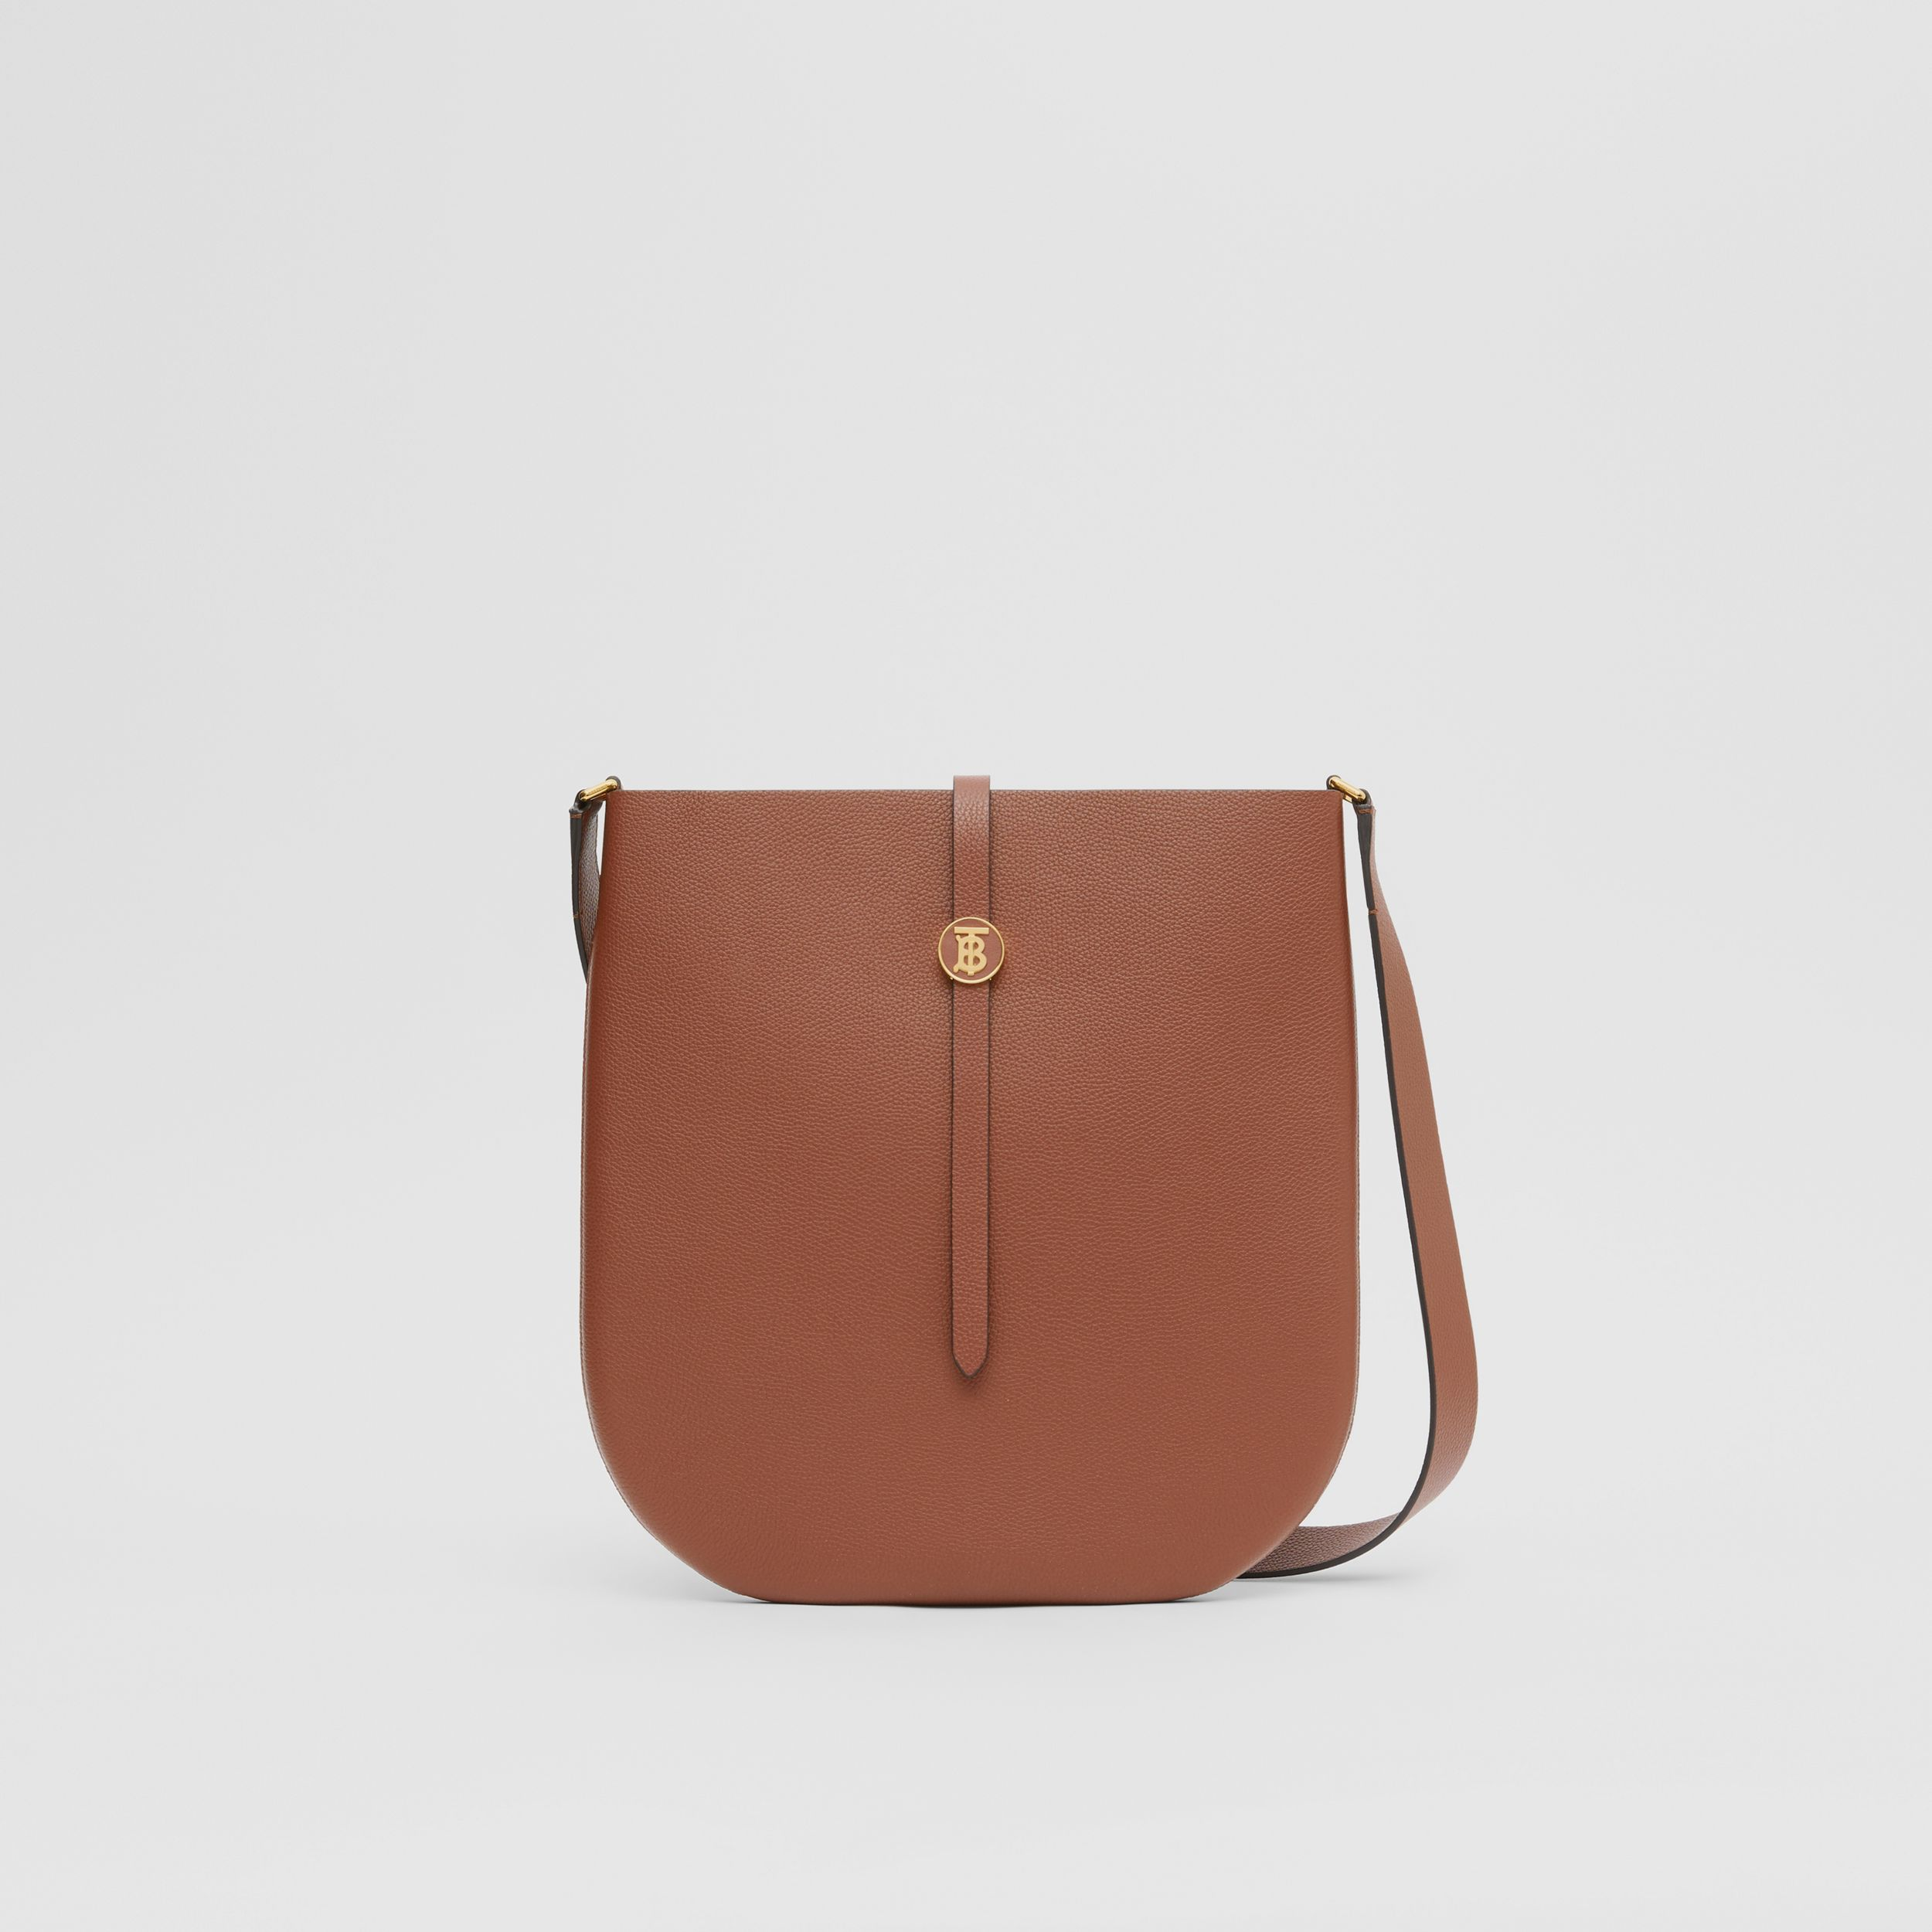 Grainy Leather Anne Bag in Tan - Women | Burberry Australia - 1